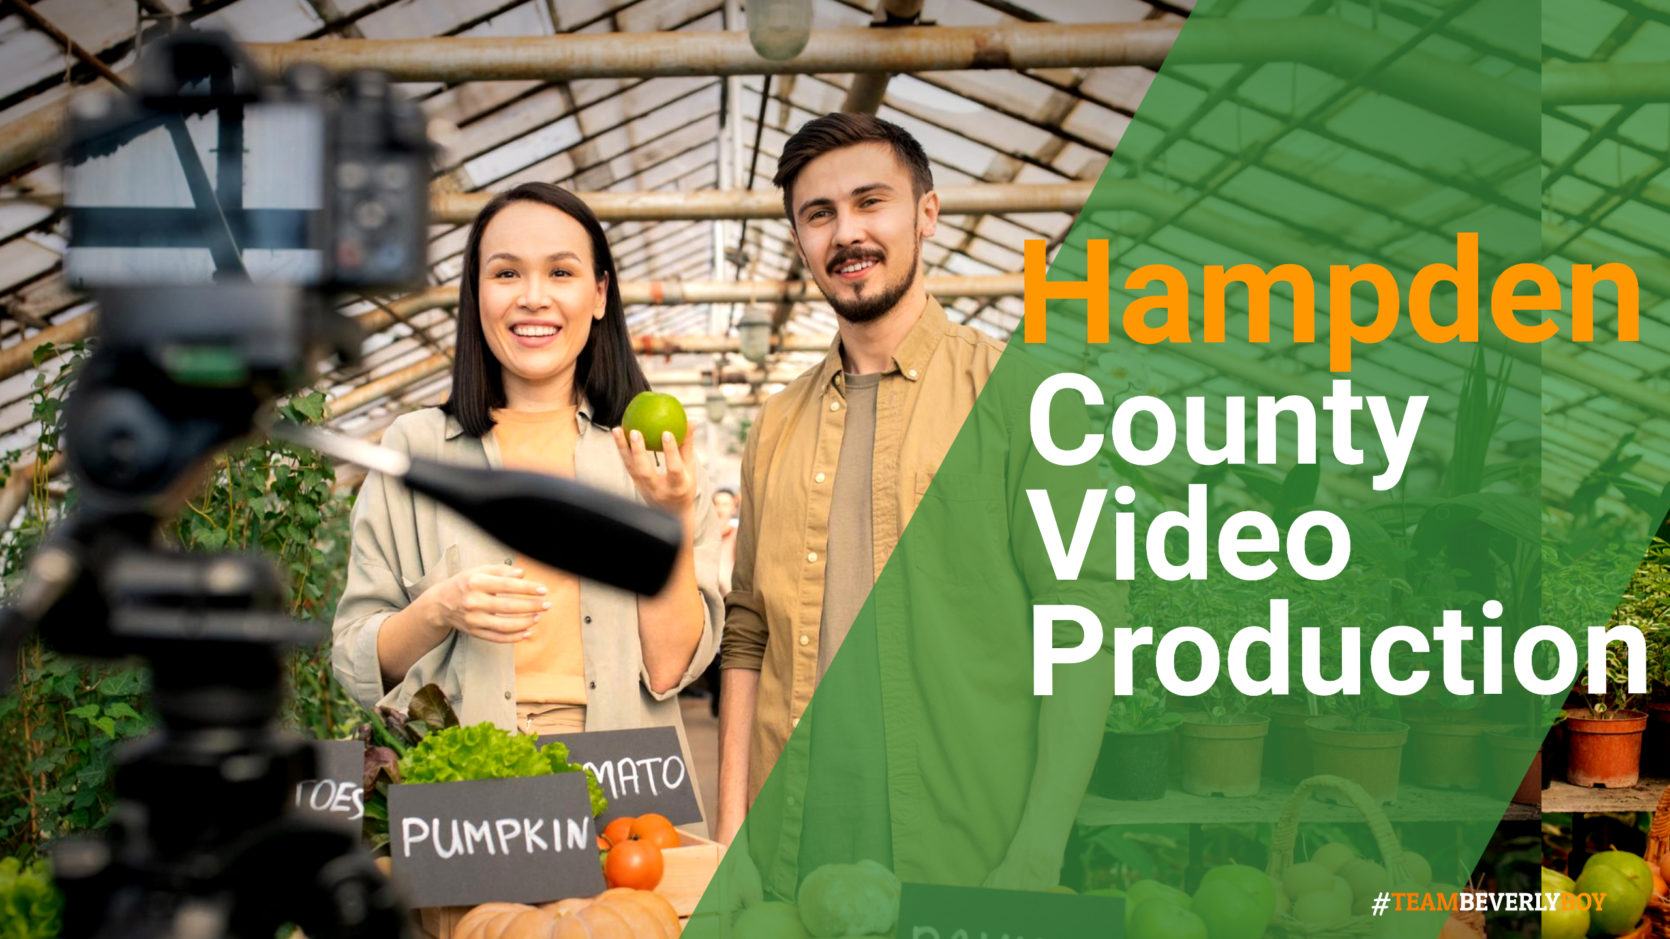 Hampden County video production